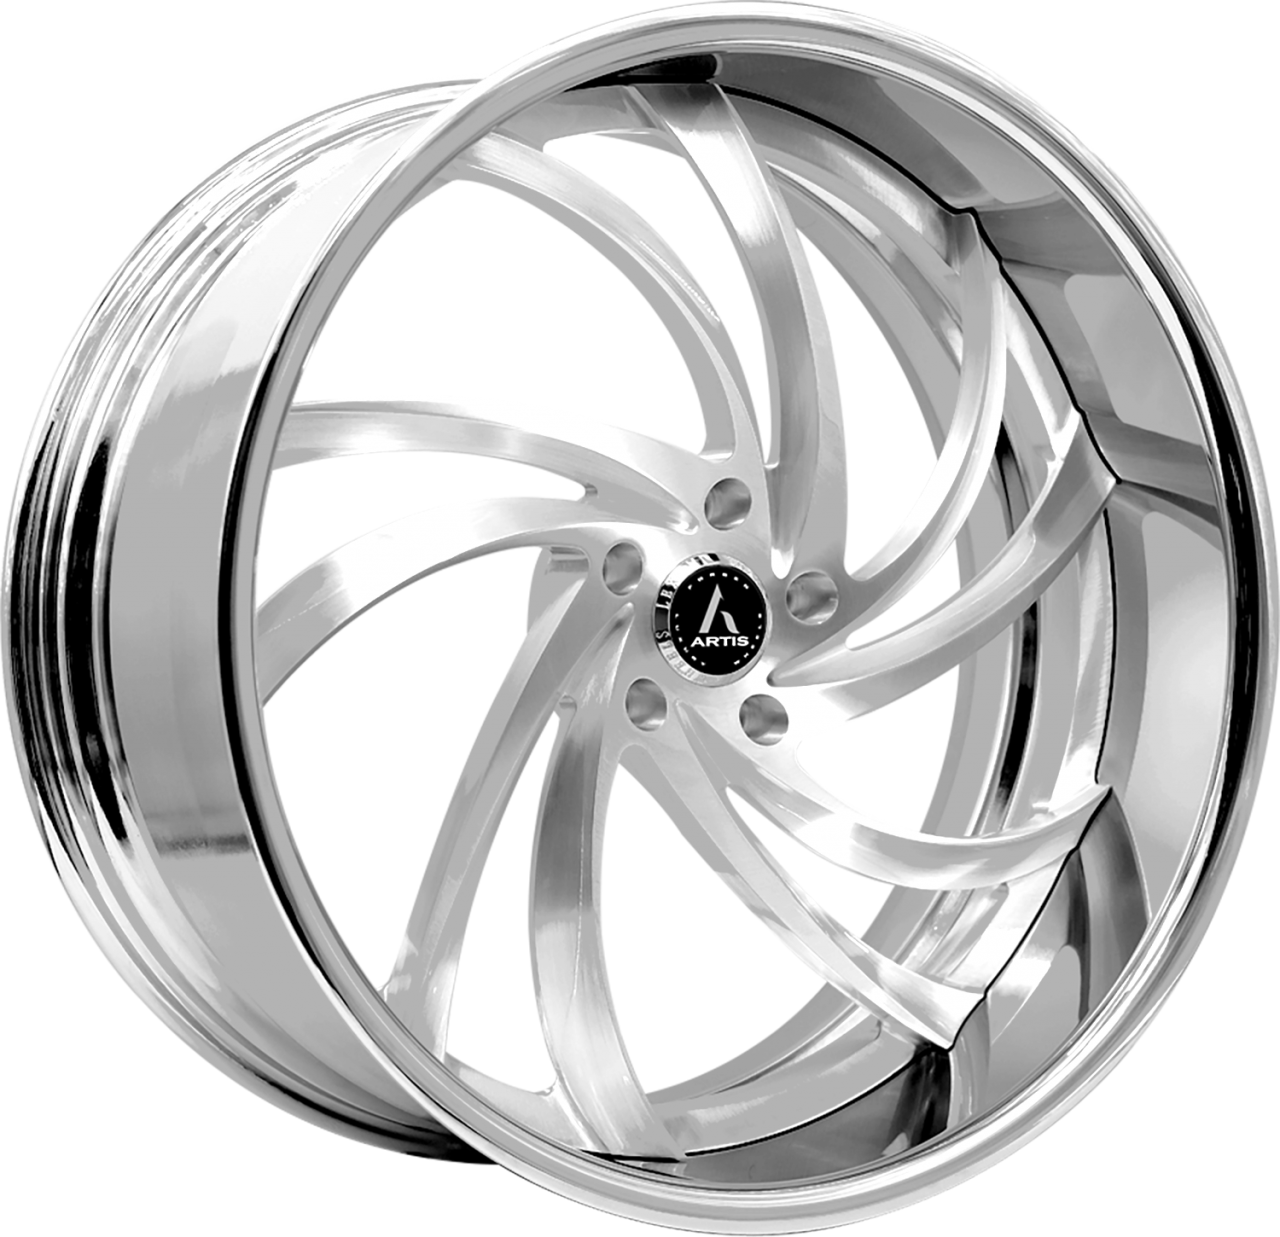 Artis Forged Twister wheel with Brushed finish